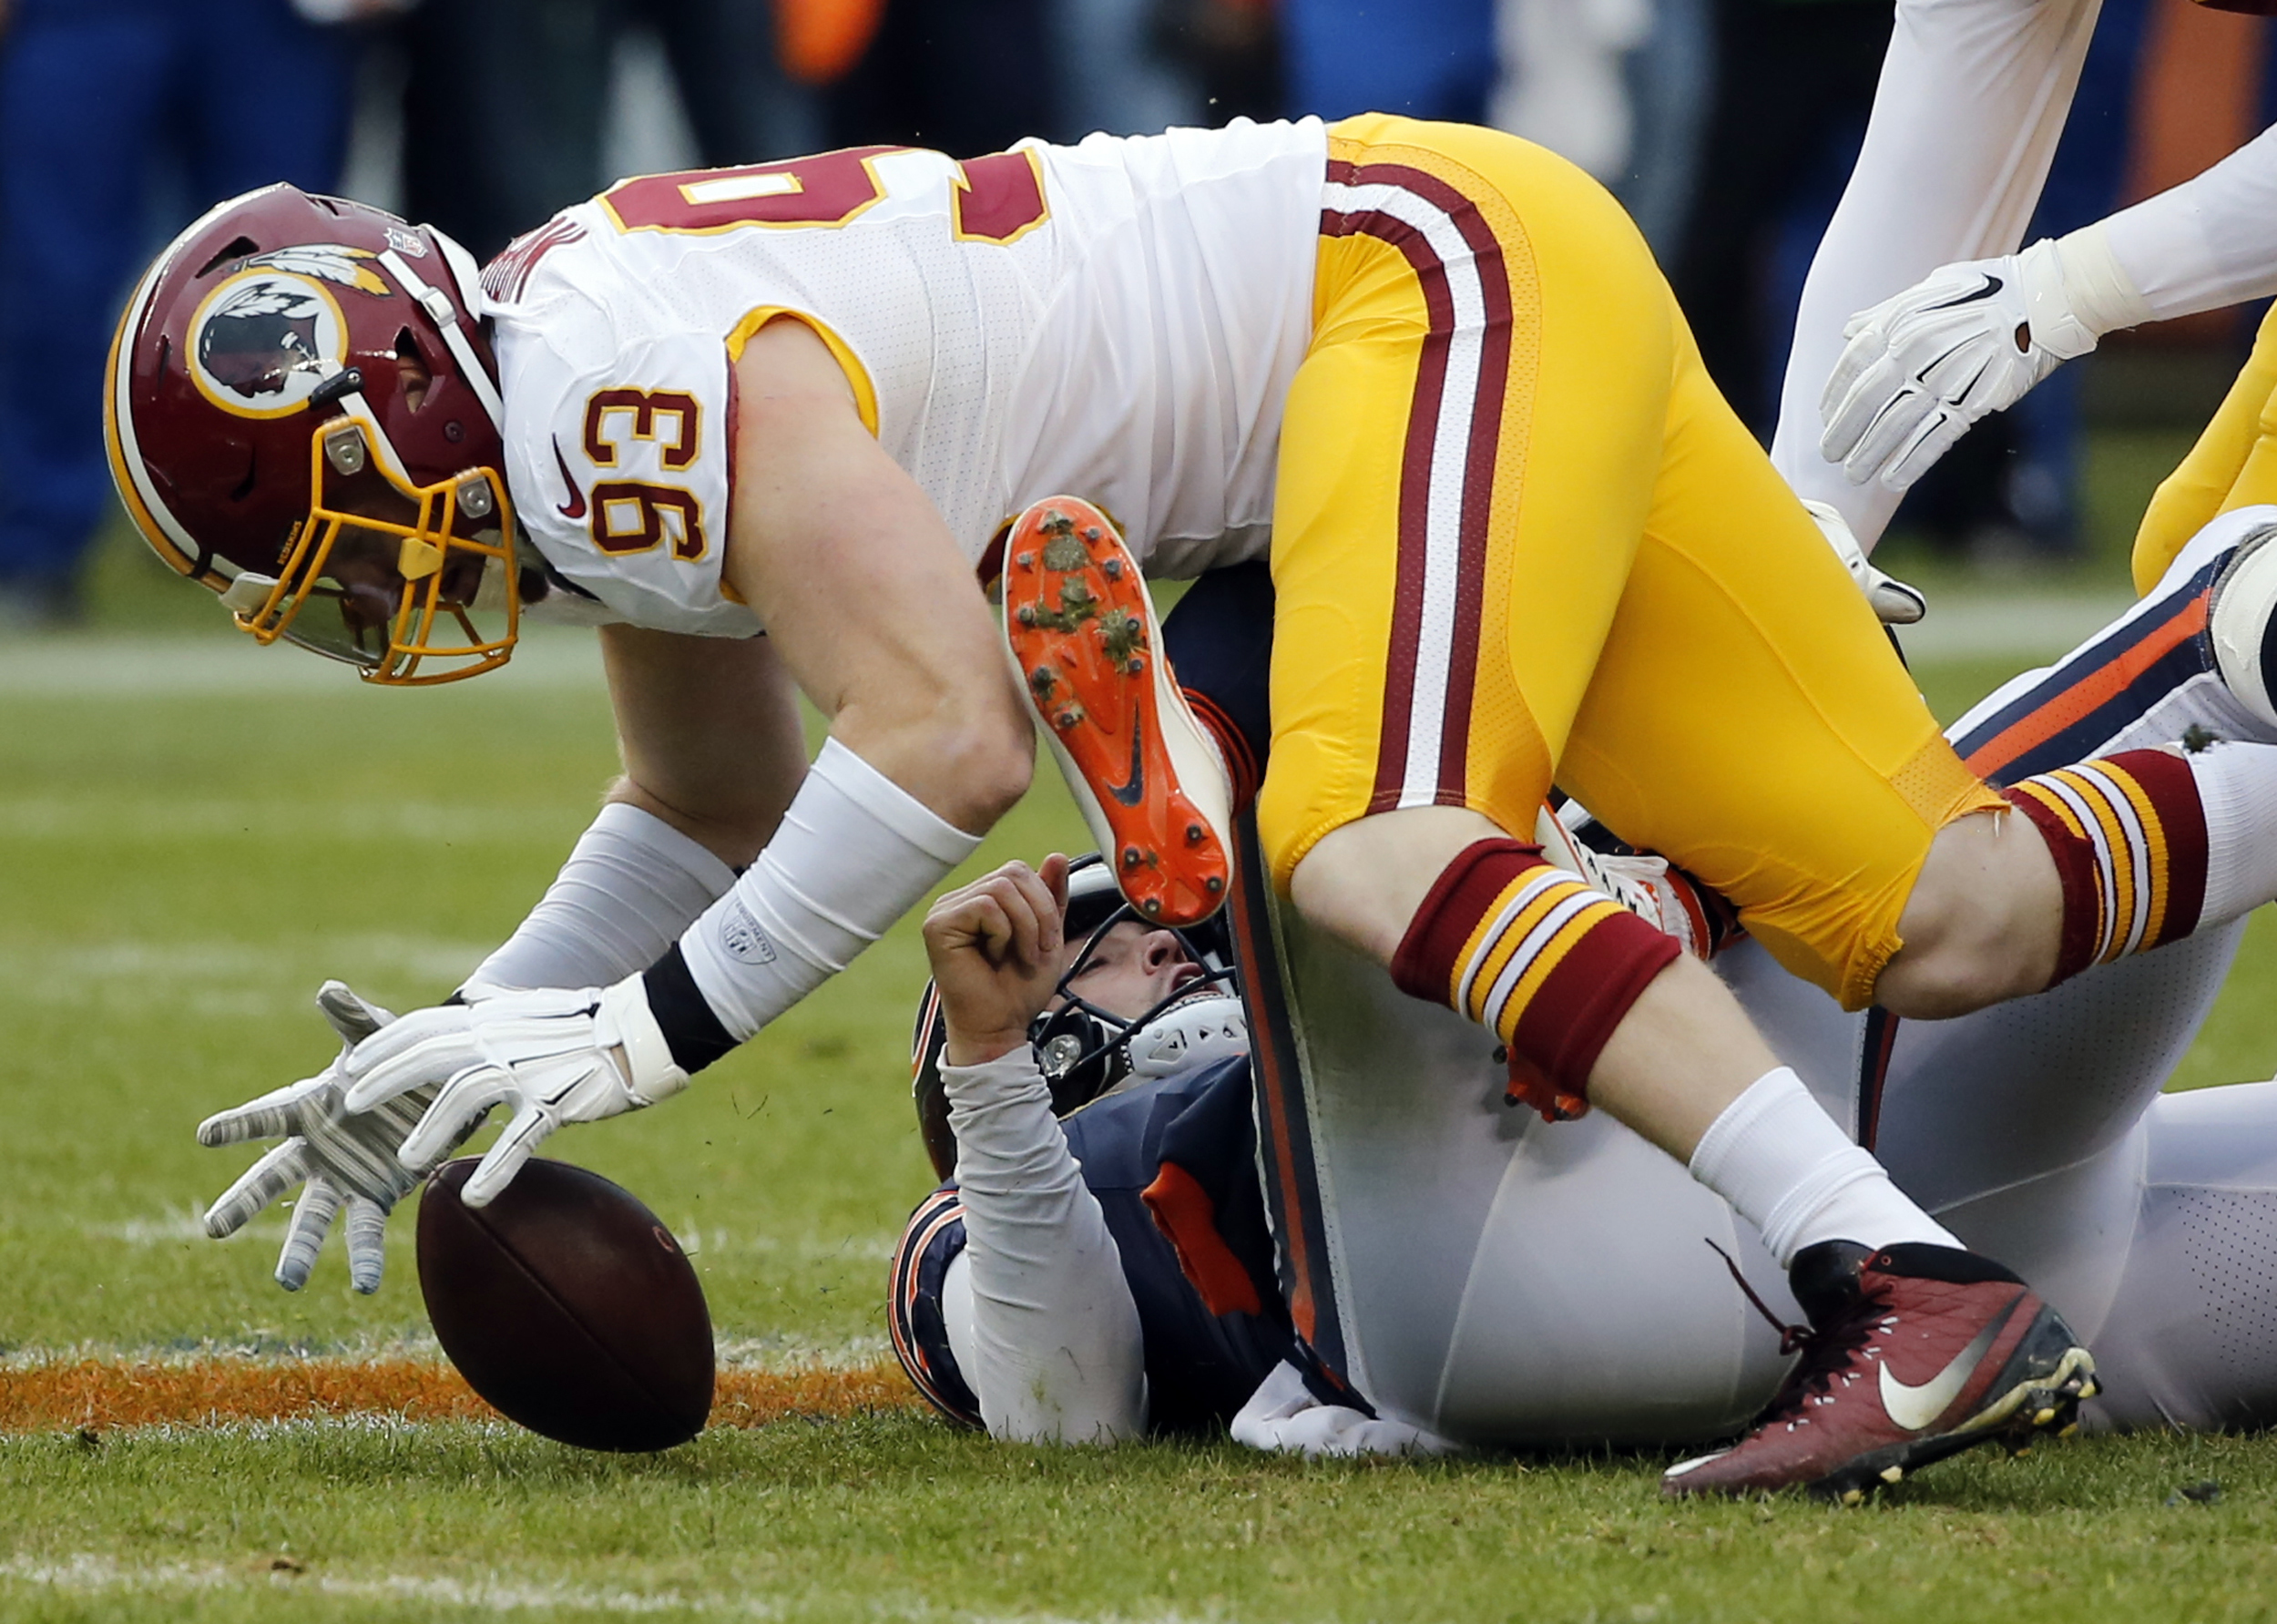 FILE - In this Dec. 13, 2015 file photo, Washington Redskins outside linebacker Trent Murphy (93) recovers a fumble after tackling Chicago Bears quarterback Jay Cutler (6) for a sack during the first half of an NFL football game in Chicago.  NFL teams are